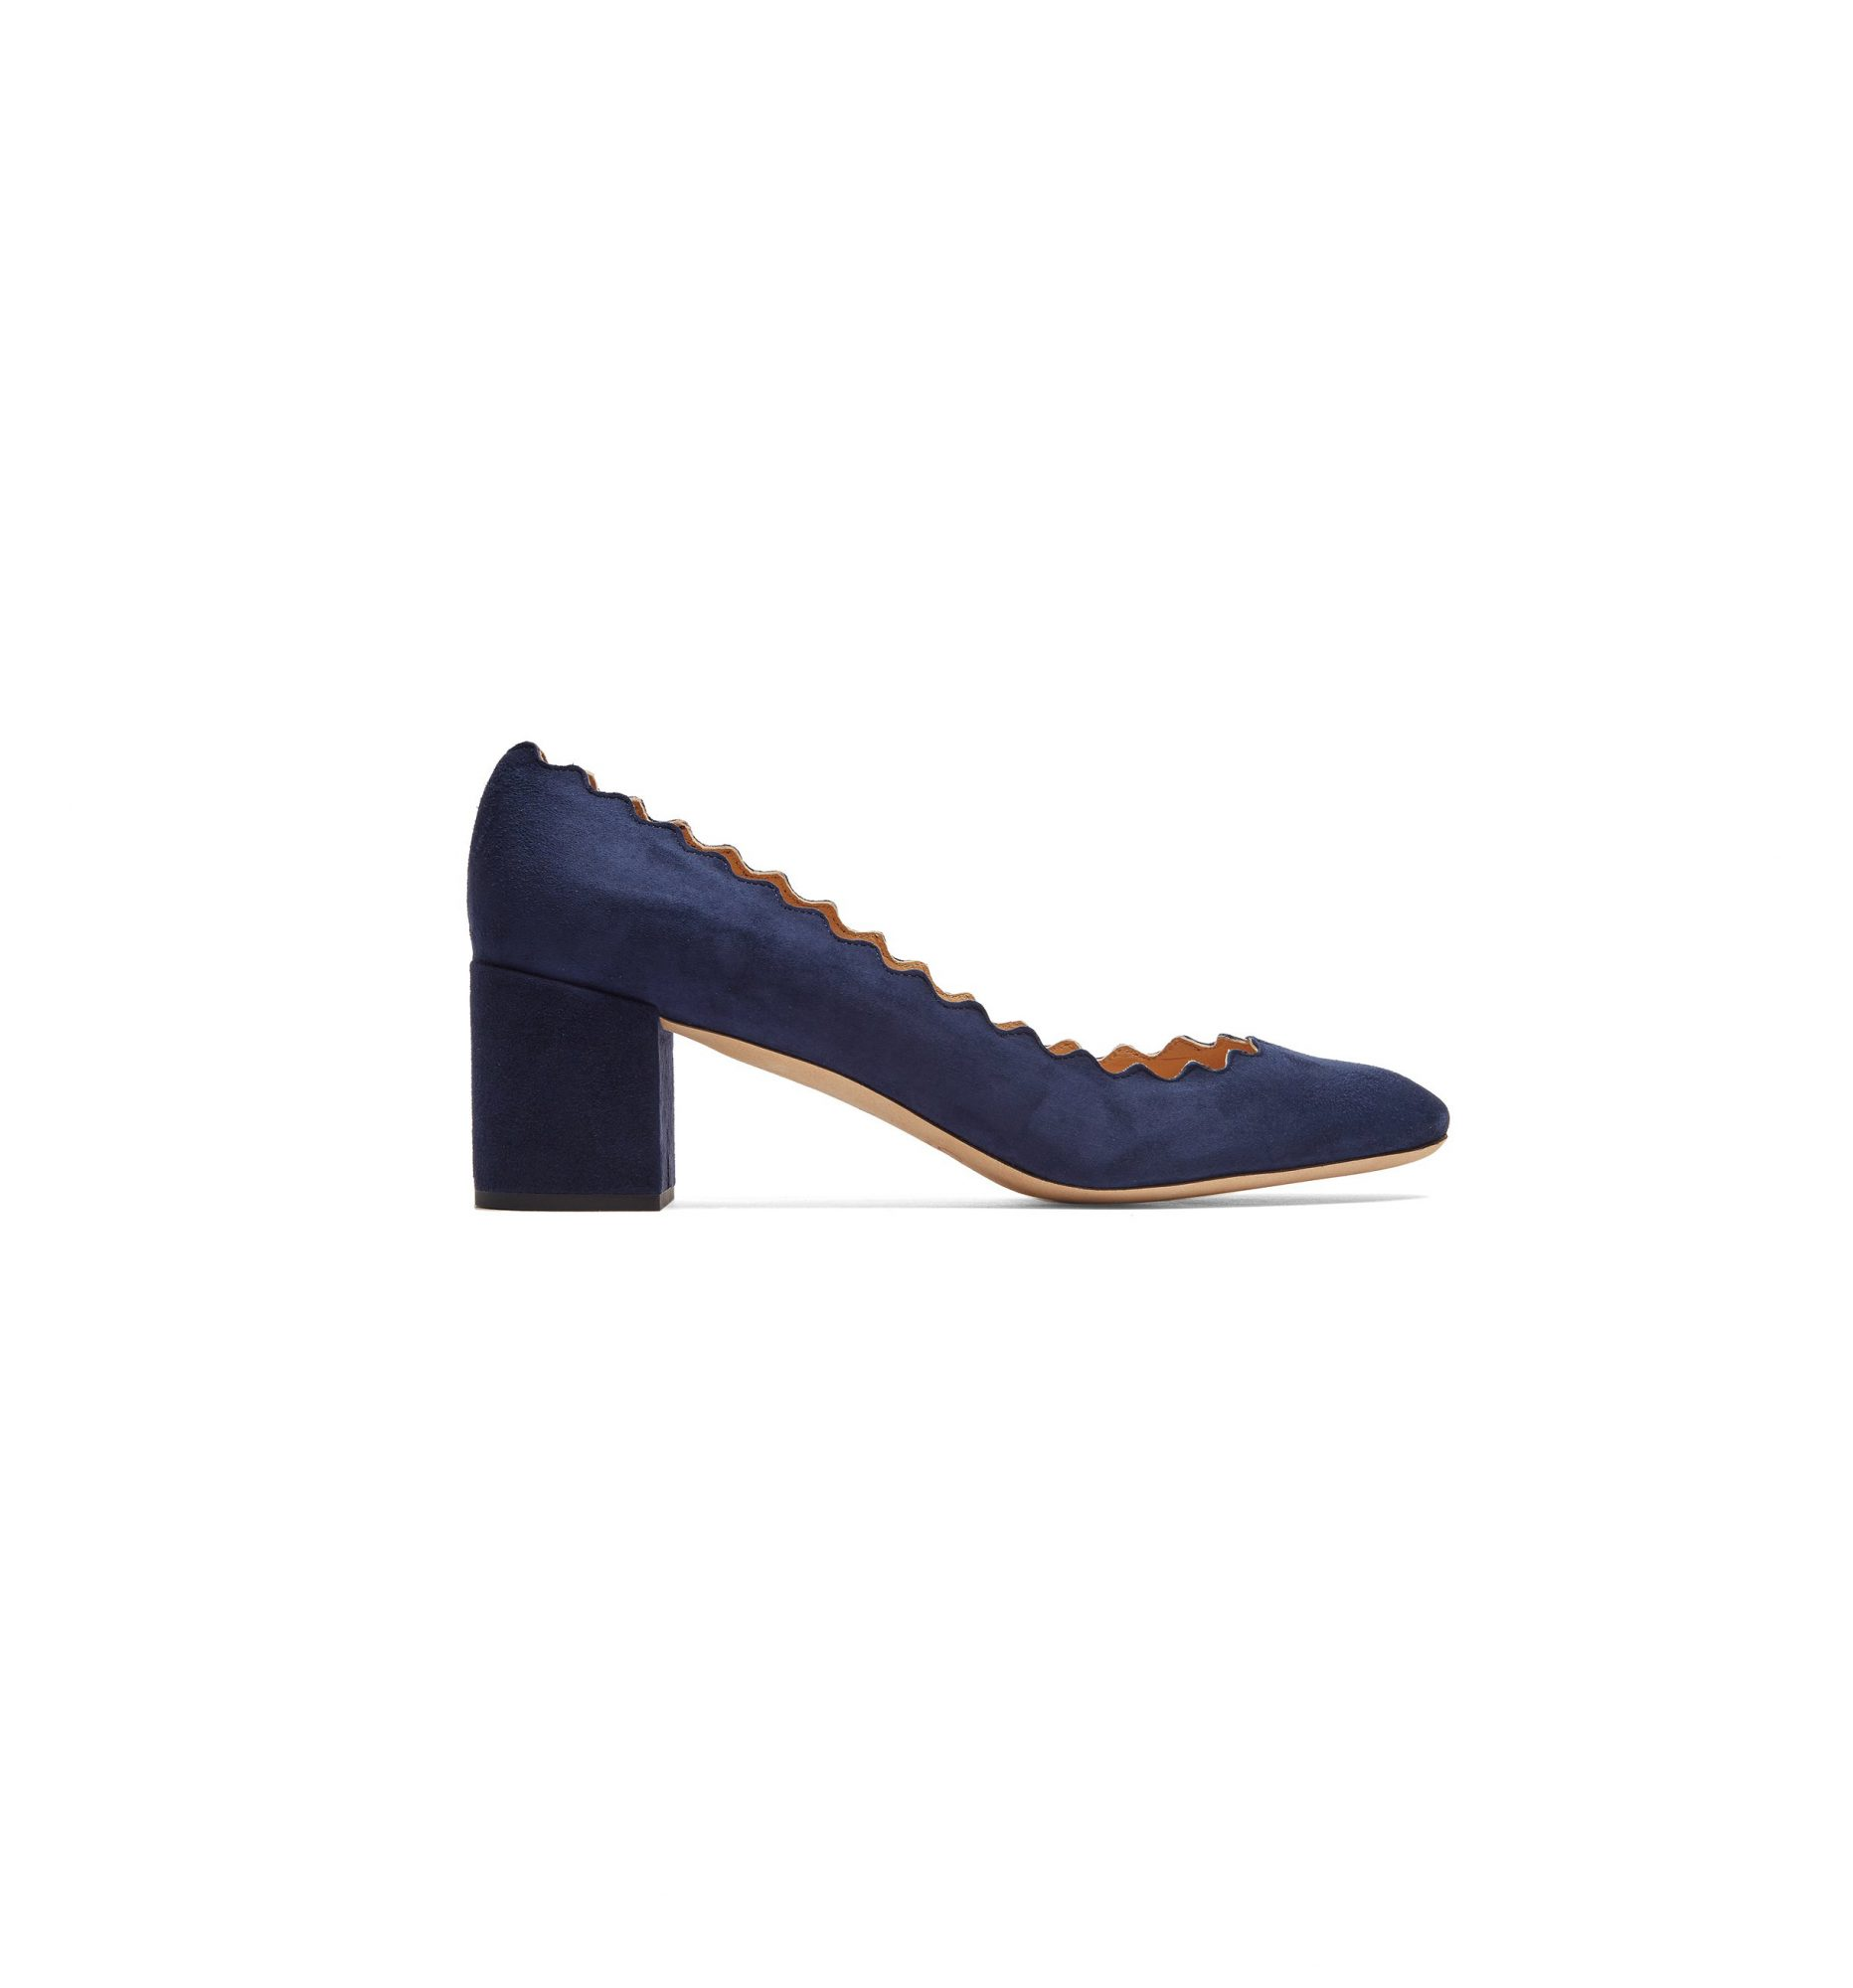 "Chloé ""Lauren"" Scallop-Edge Suede Pumps"